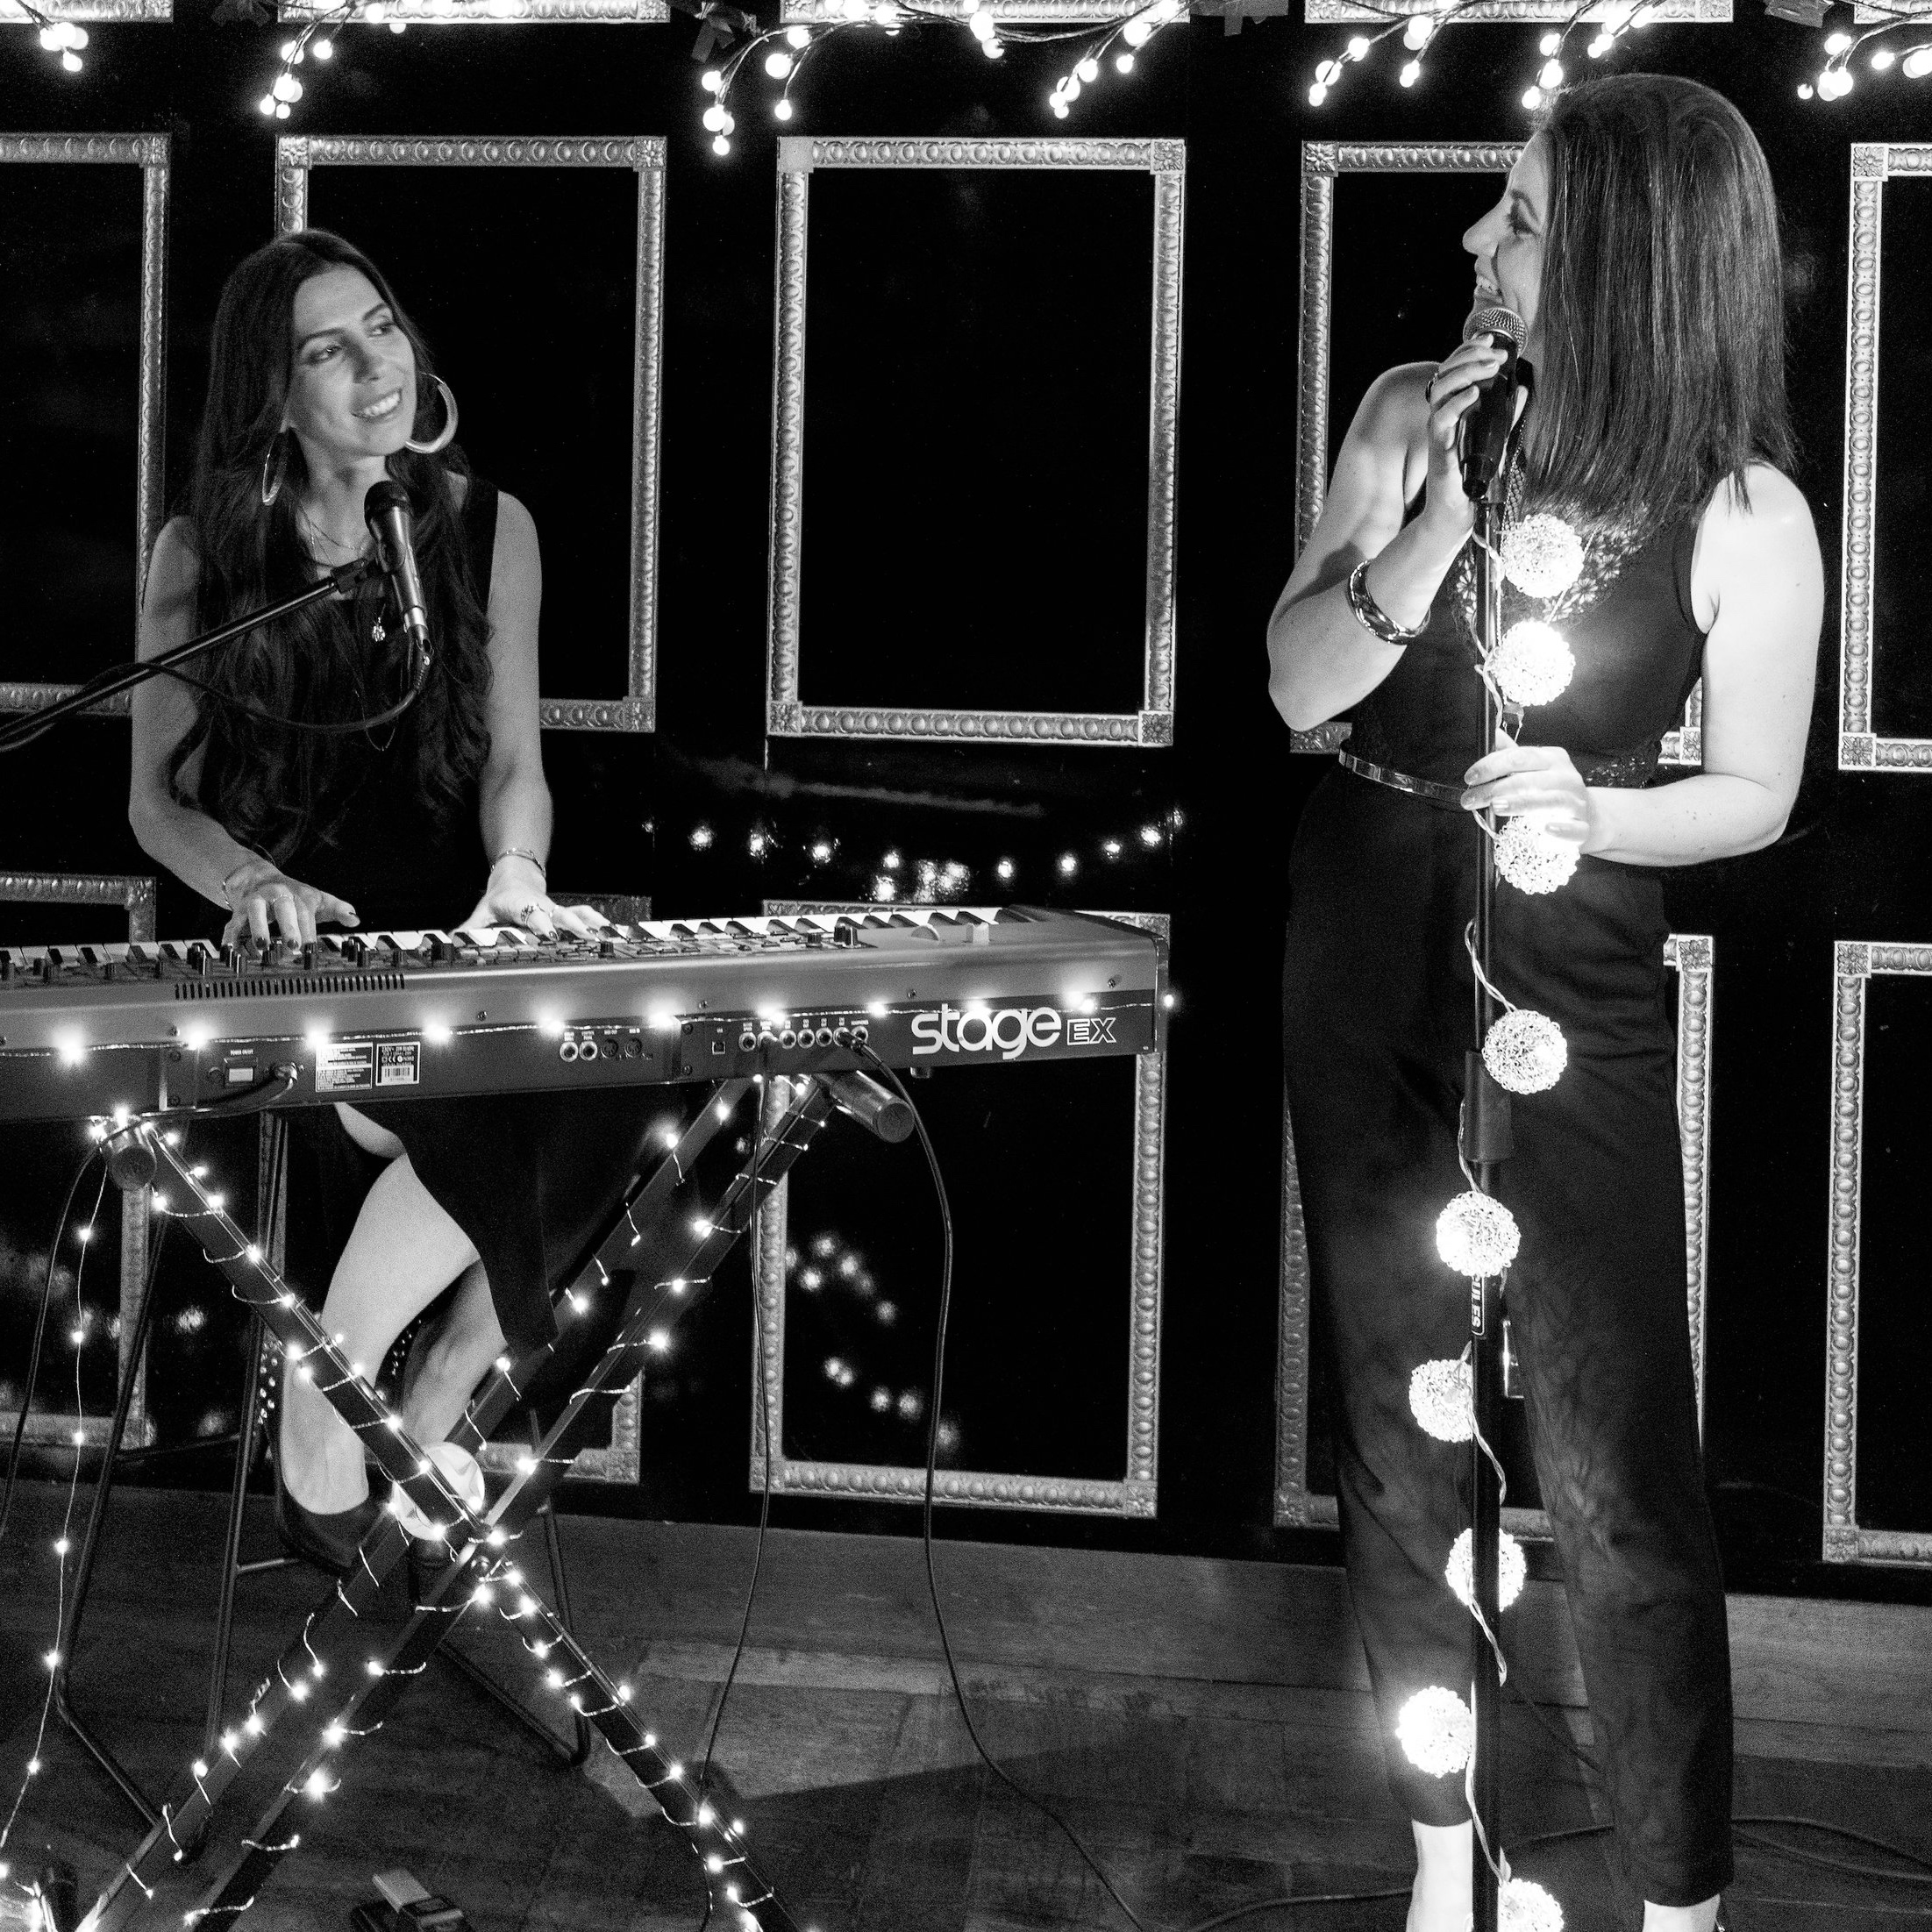 IF I AIN'T GOT YOU - DUOVocals & KeysStarting from £400Acoustic performance of hit songs with the ability to customise sets to suit the event and style.Perfect for occasions looking for background music to create an atmosphere and entertain guests.Set up & soundcheck time: 1 hour